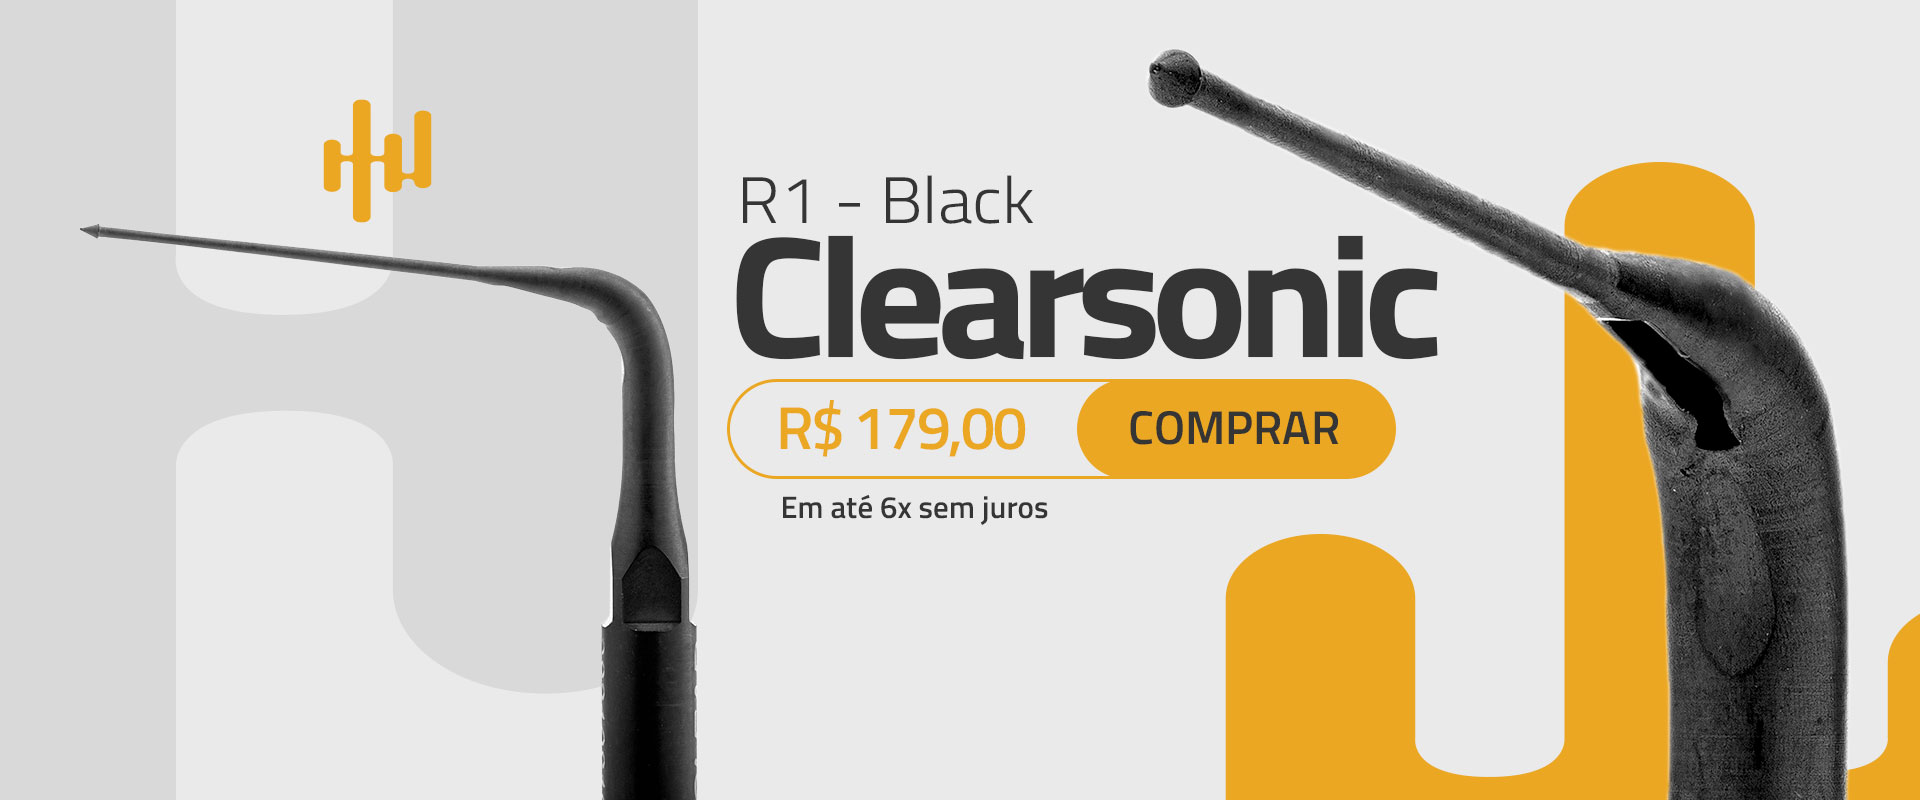 r1-clearsonic-black